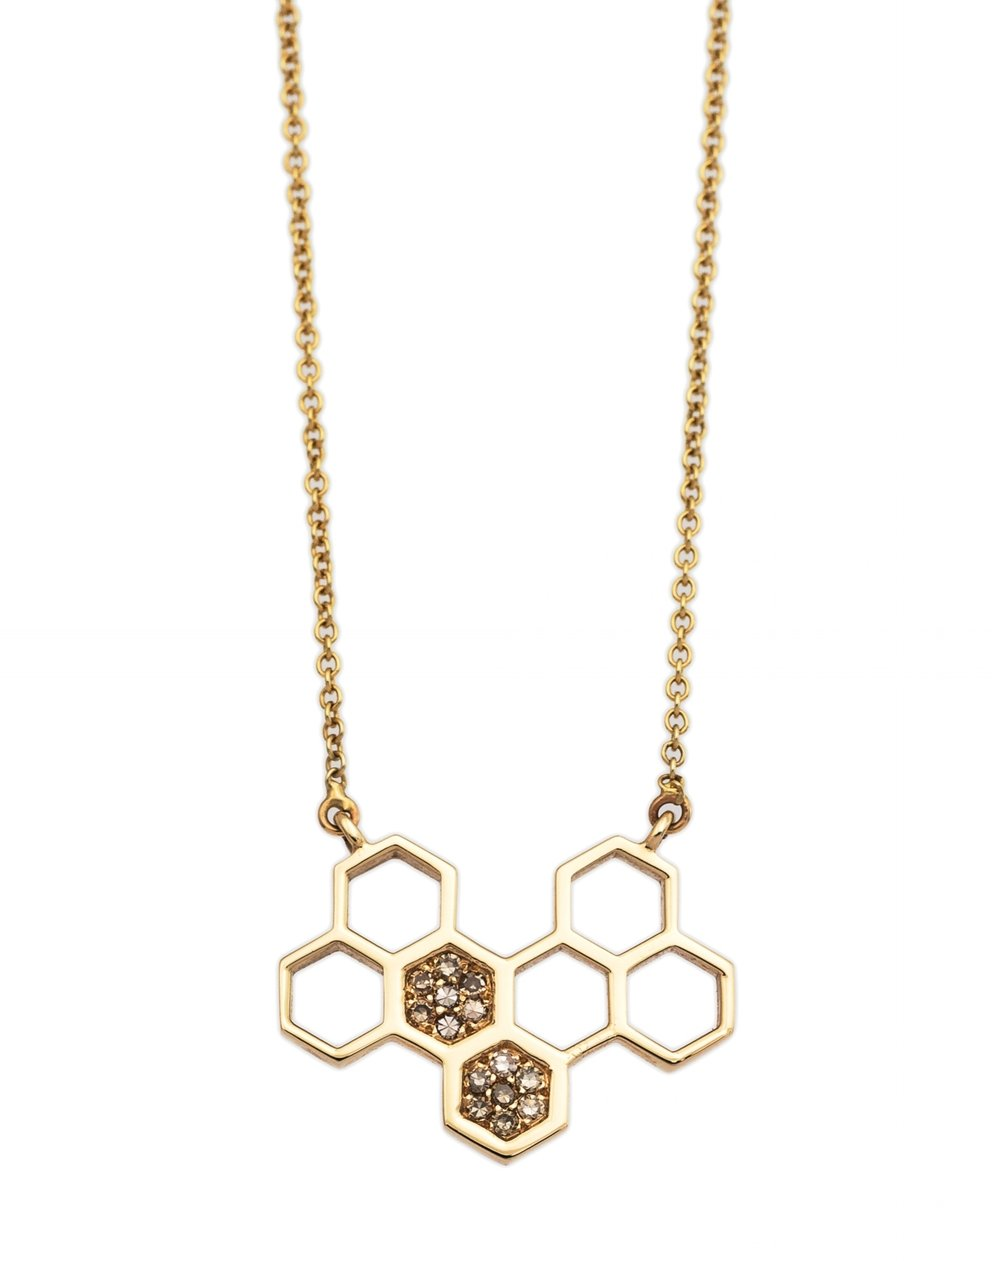 Honeycombs Eve Necklace